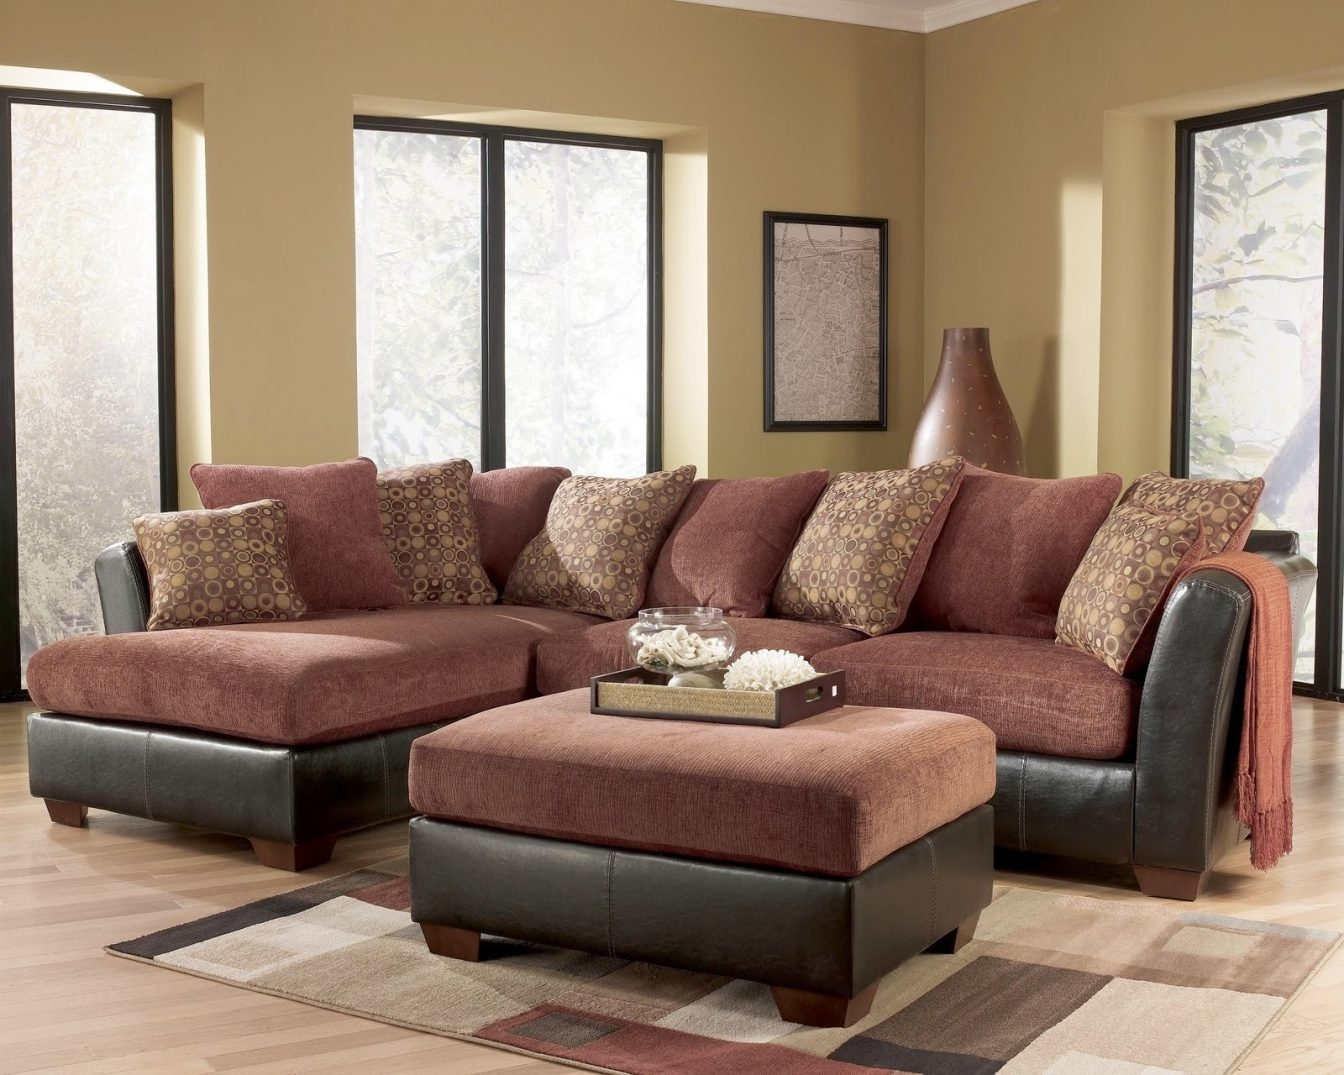 Ashley Furniture Sectional Sofa #2 Ashley Furniture – Larson 31400 Within Favorite Royal Furniture Sectional Sofas (View 10 of 20)